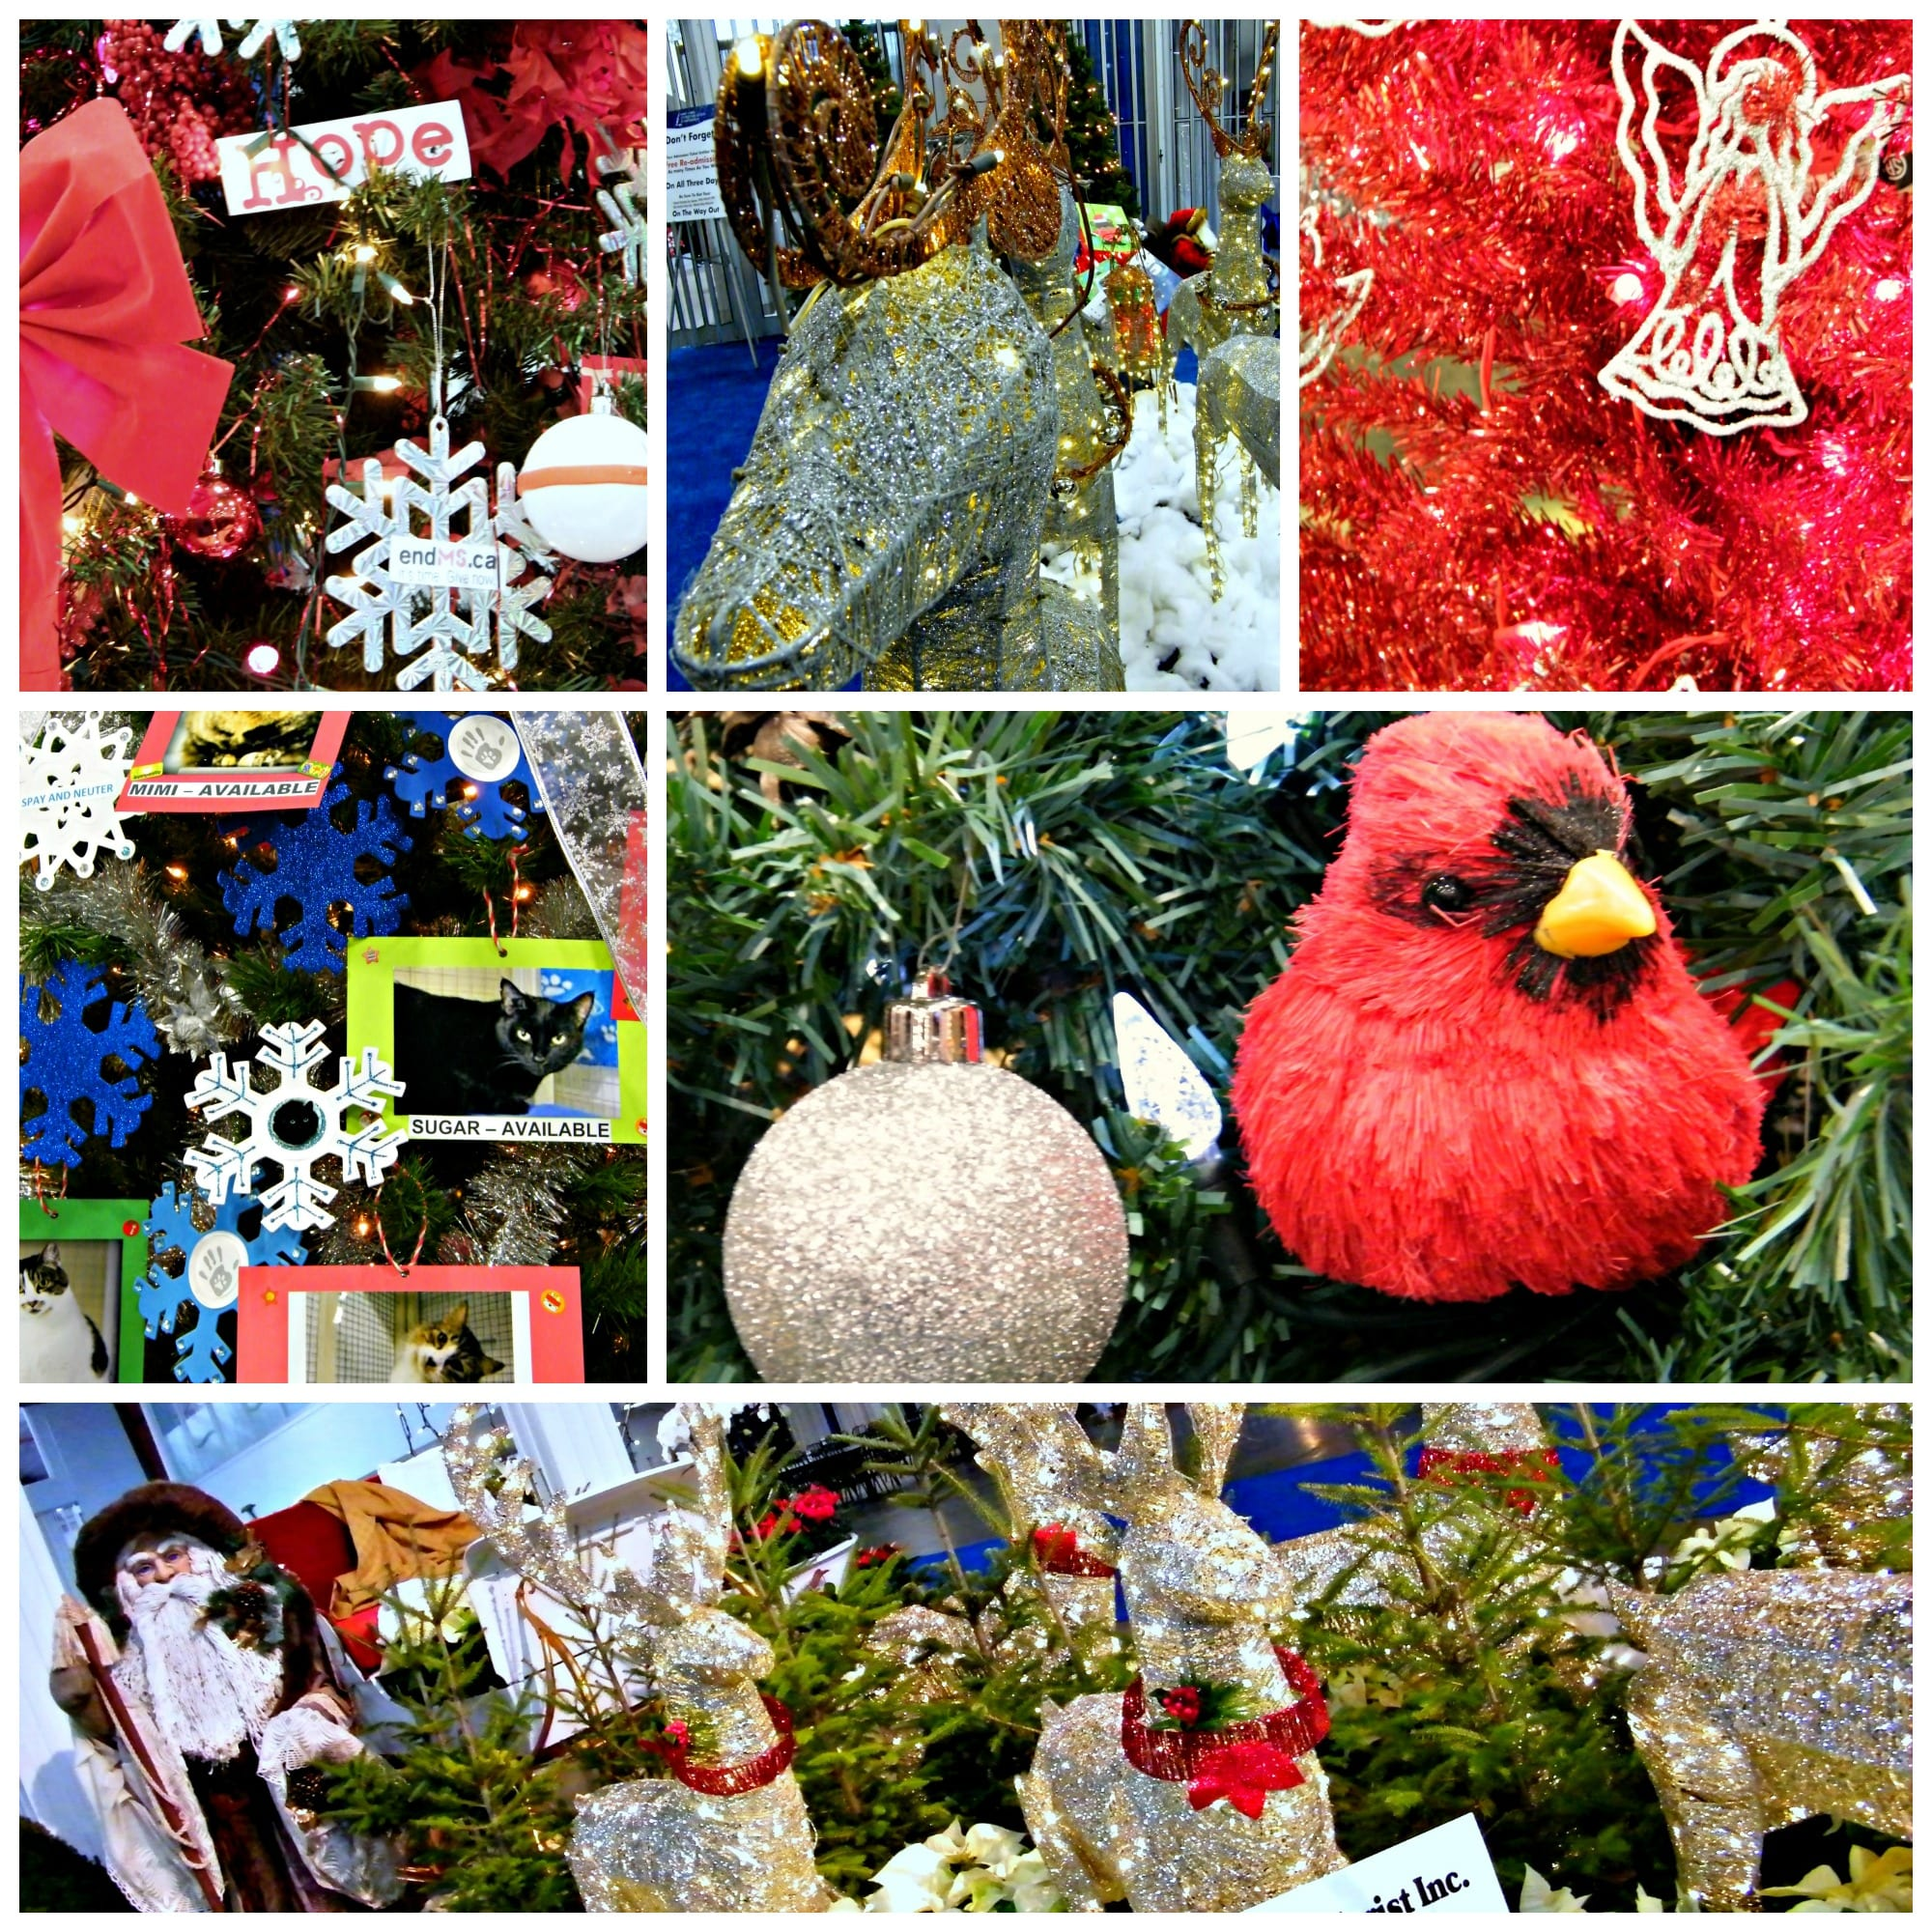 Beach House At Dundarave Pier: West Coast Christmas Show And Artisan Marketplace In